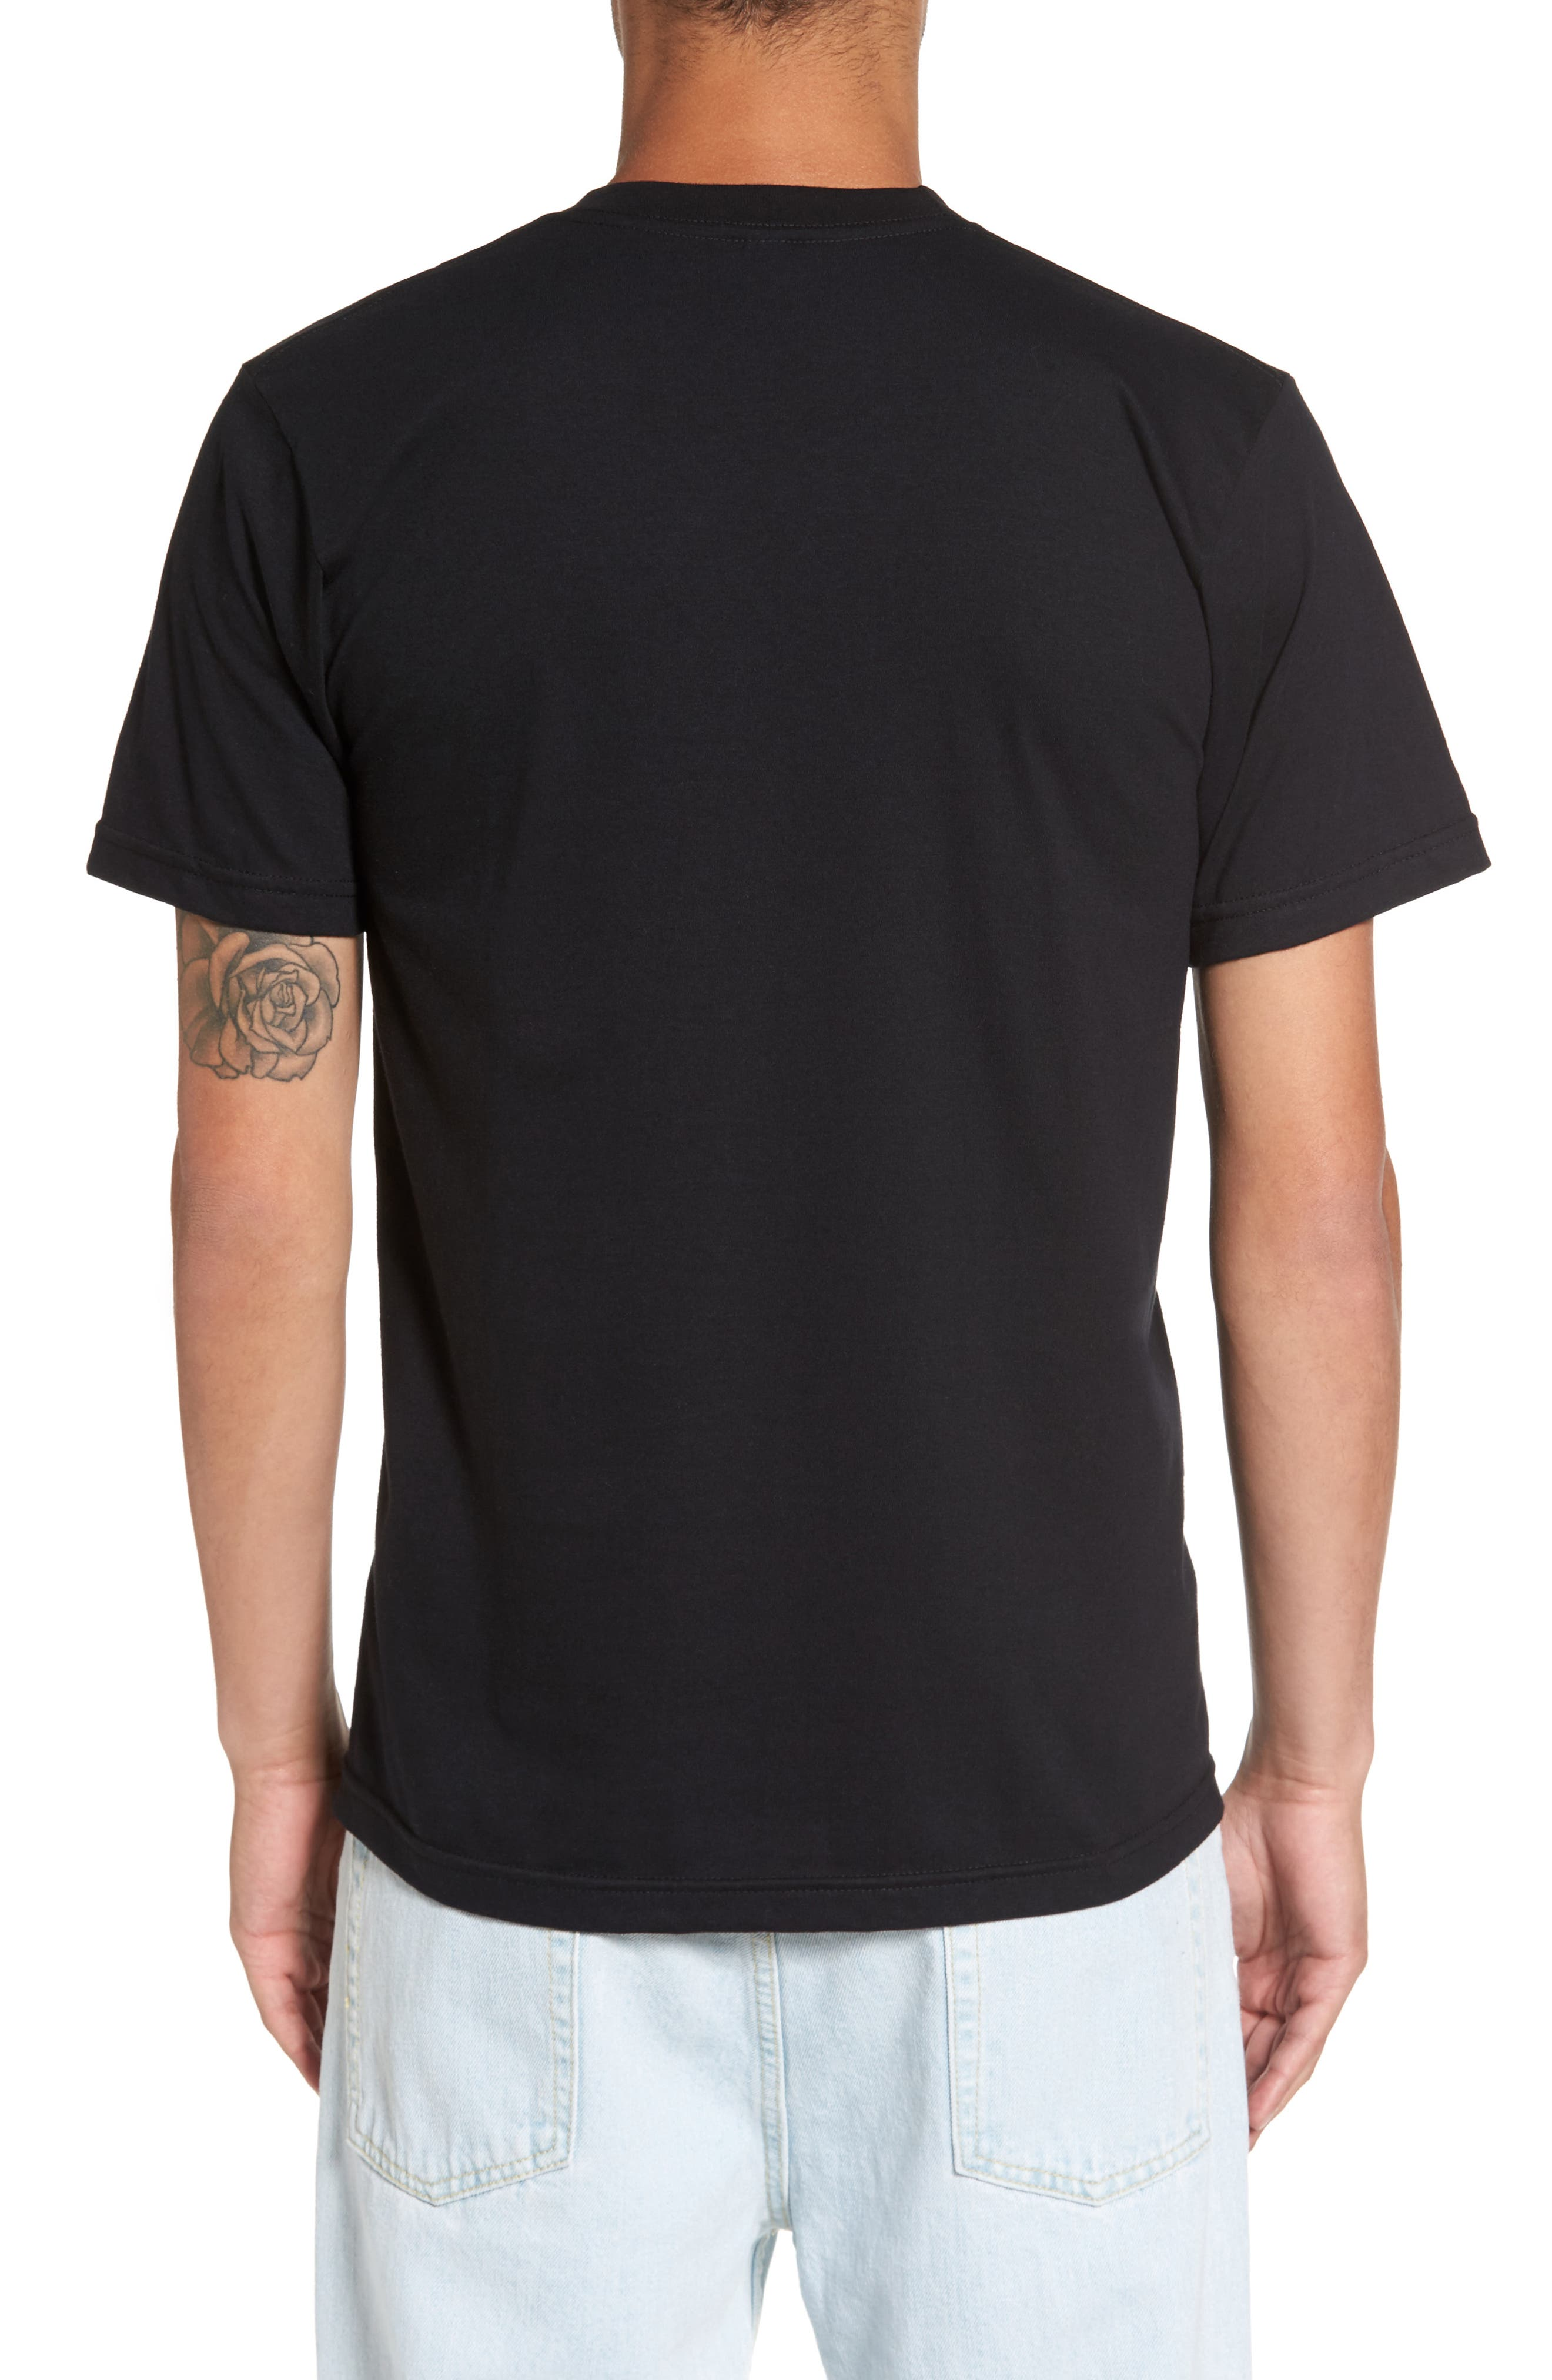 Johnny Tree Clouds T-Shirt,                             Alternate thumbnail 2, color,                             001